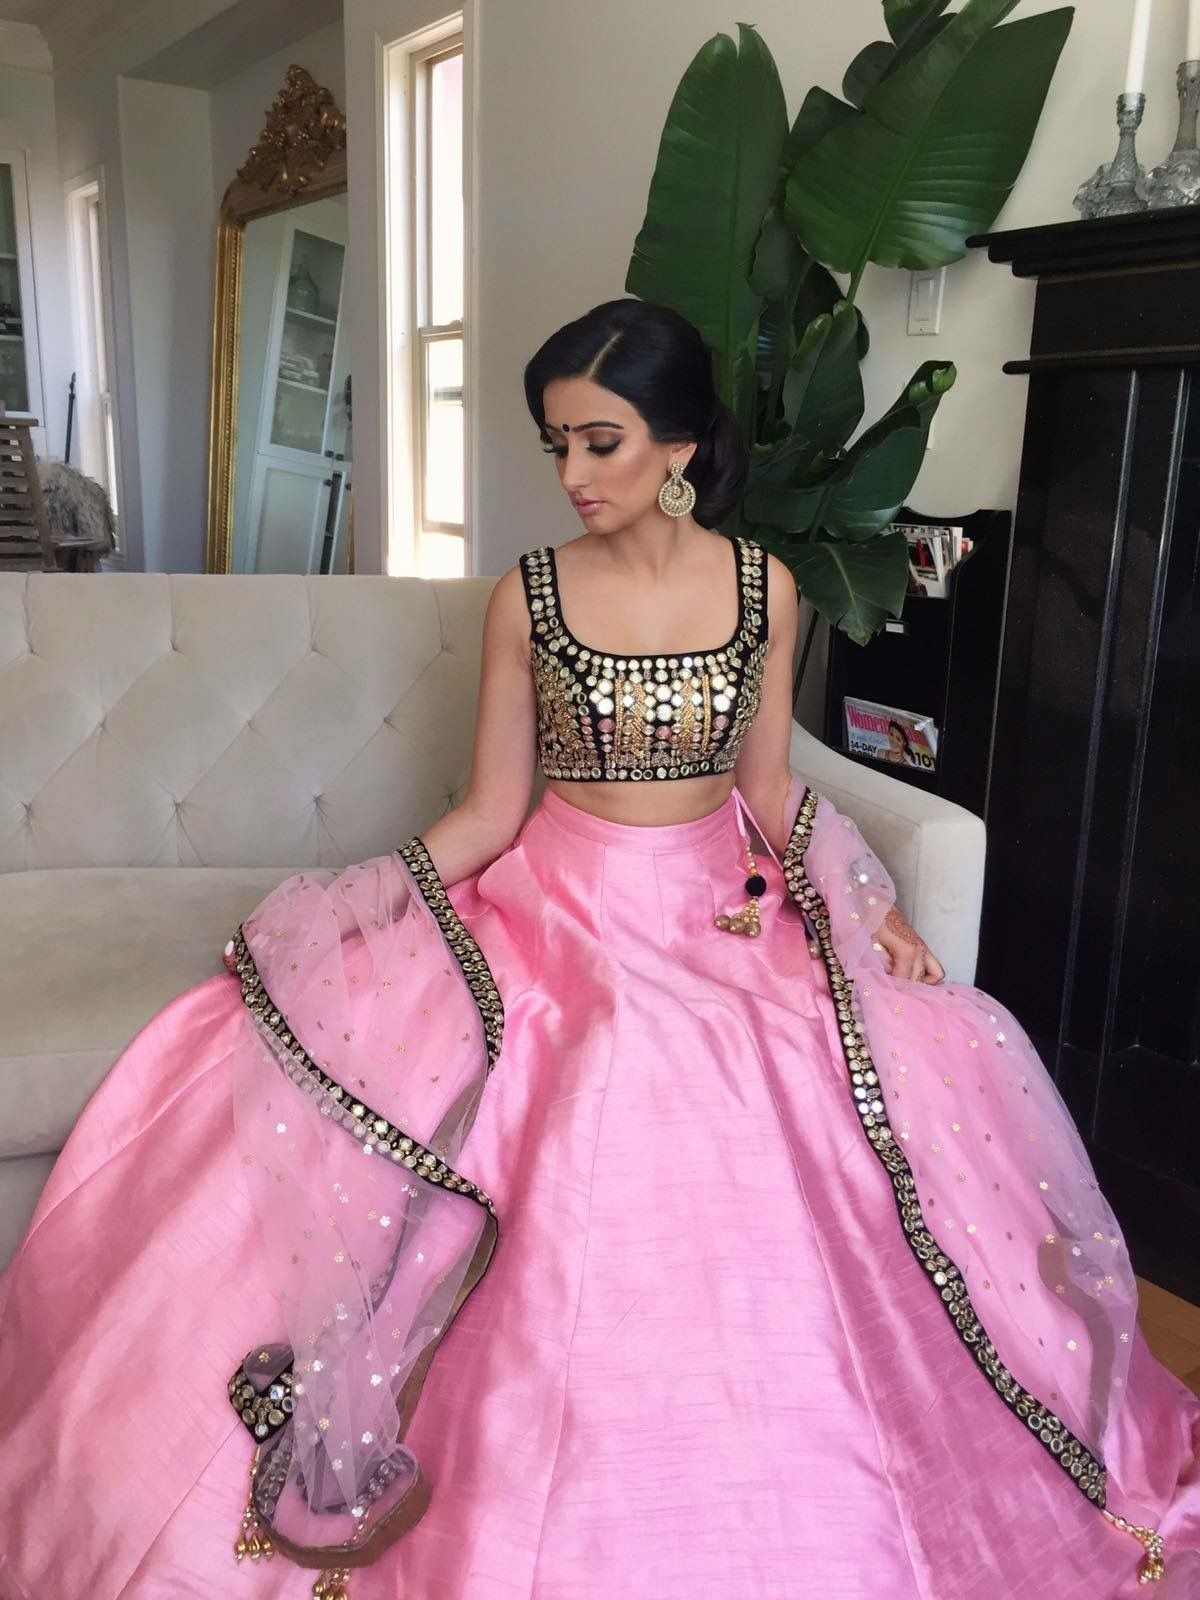 Best color dress to wear to a wedding  Pin by Anjali Singh on Dresses  Pinterest  Indian wear Indian